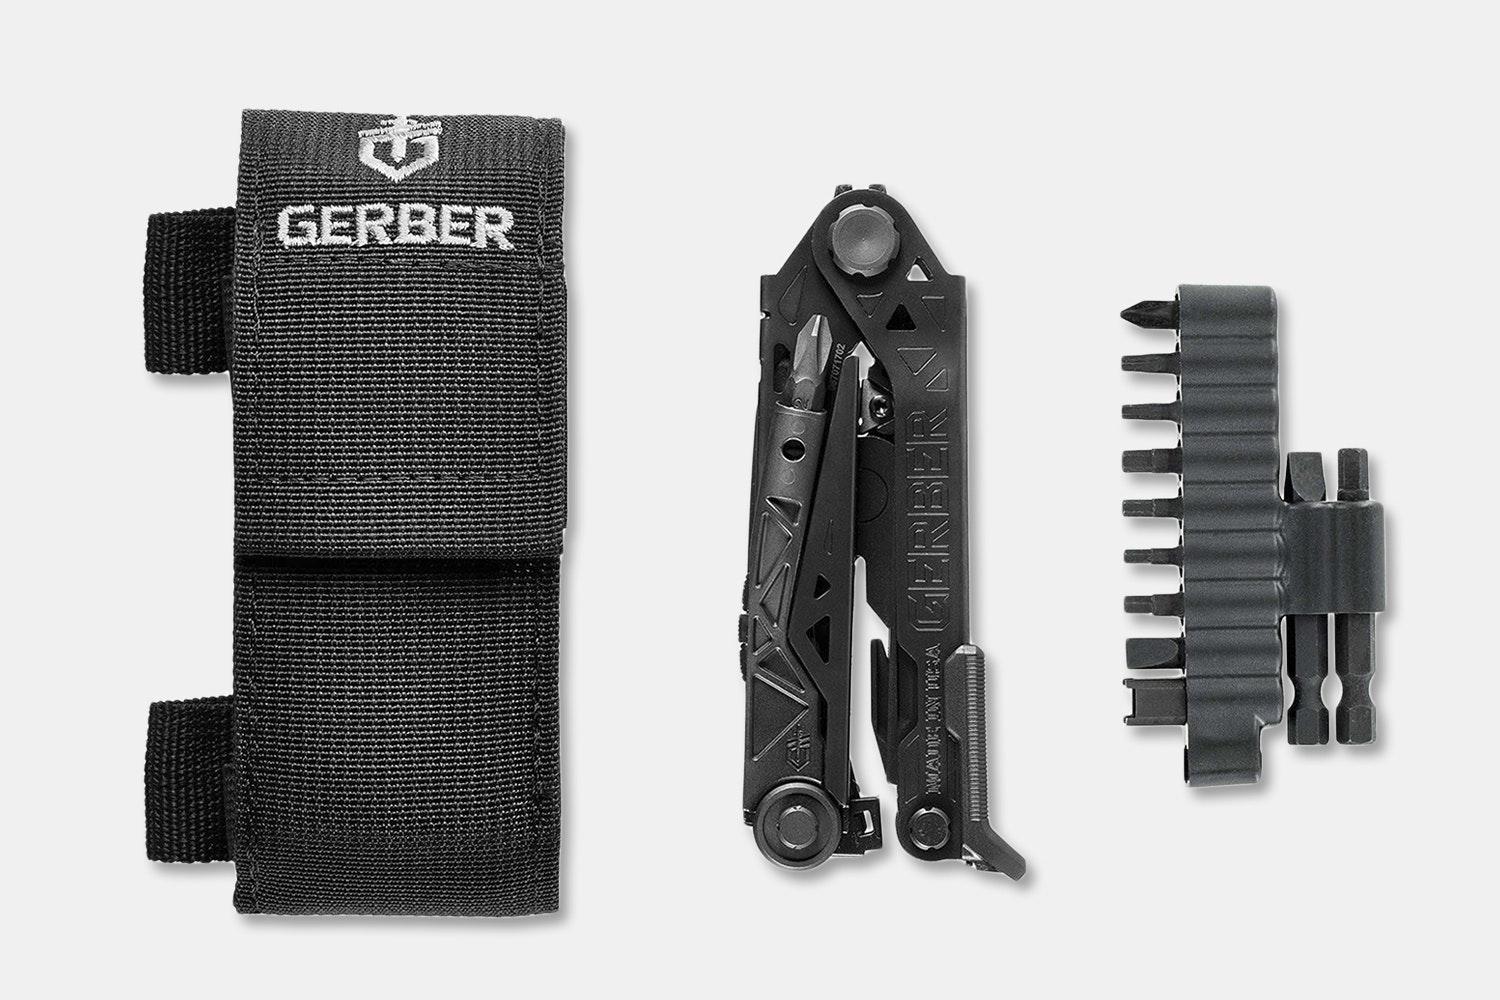 w/ M4 Bit Set & Molle Black Berry-Compliant Sheath (30-001427) (+ $12)